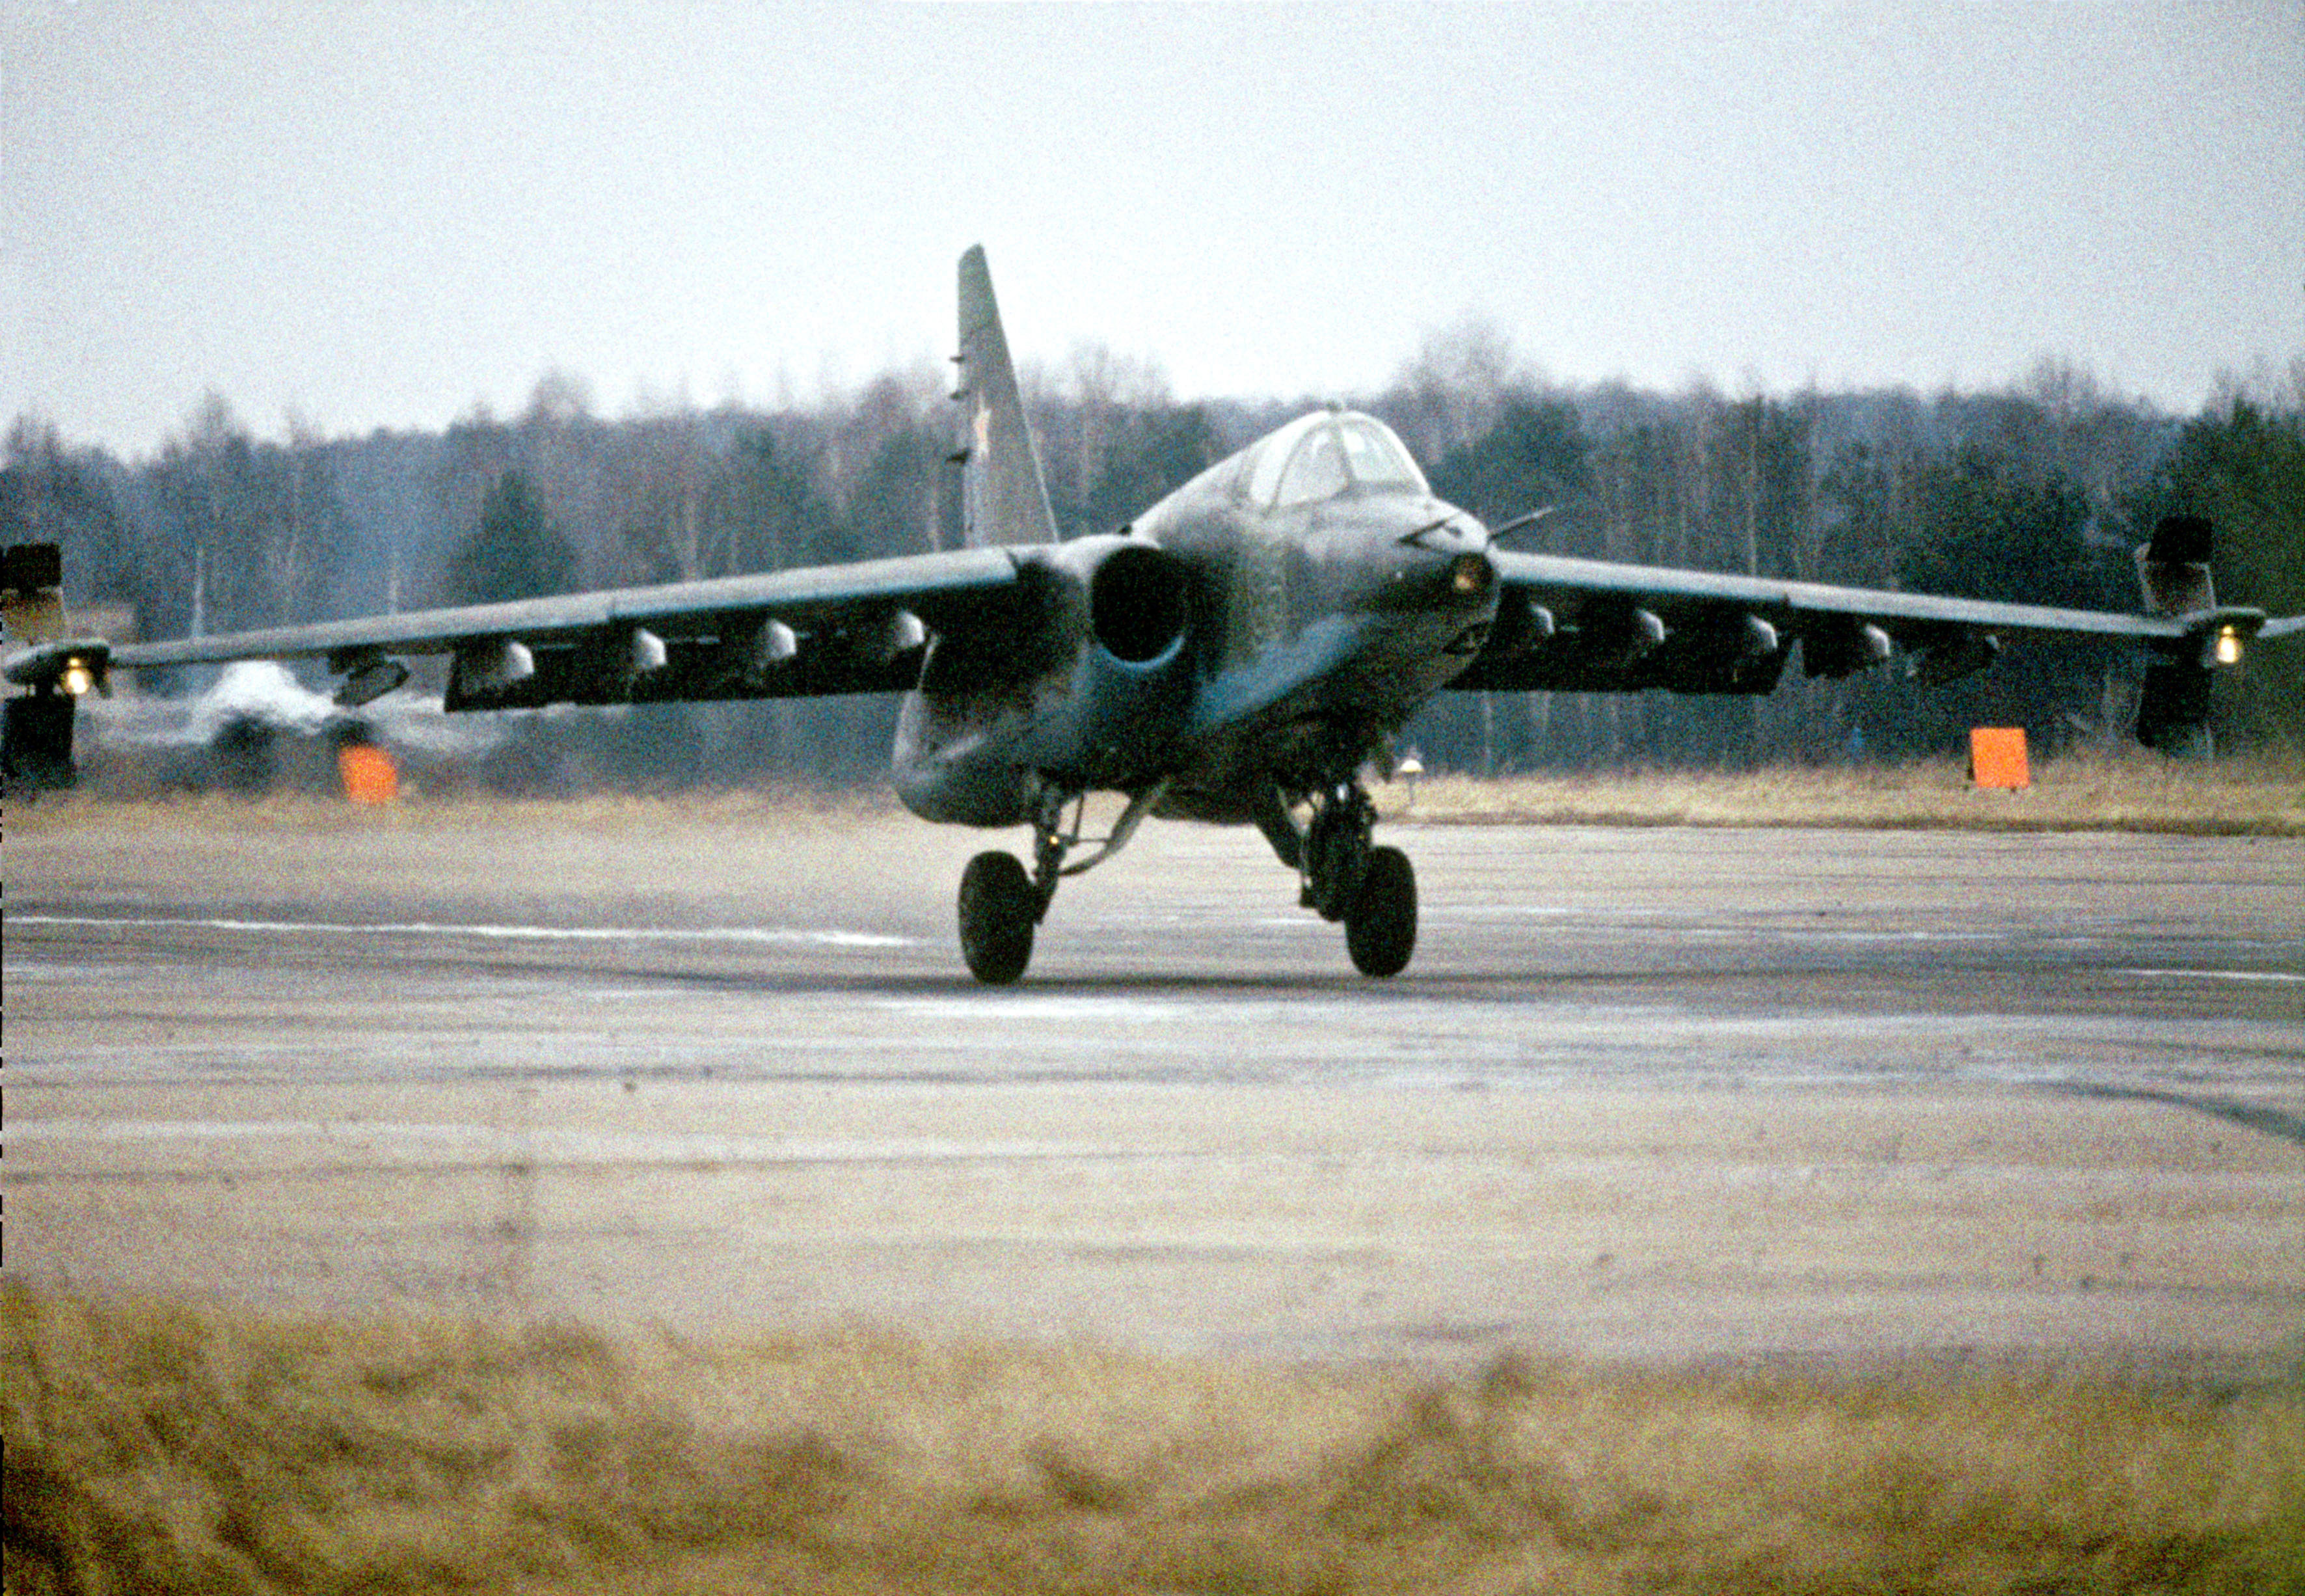 The SU-25, NATO classification Frogfoot, has the Russian nickname 'Rook' (Grach), after the majestic bird.